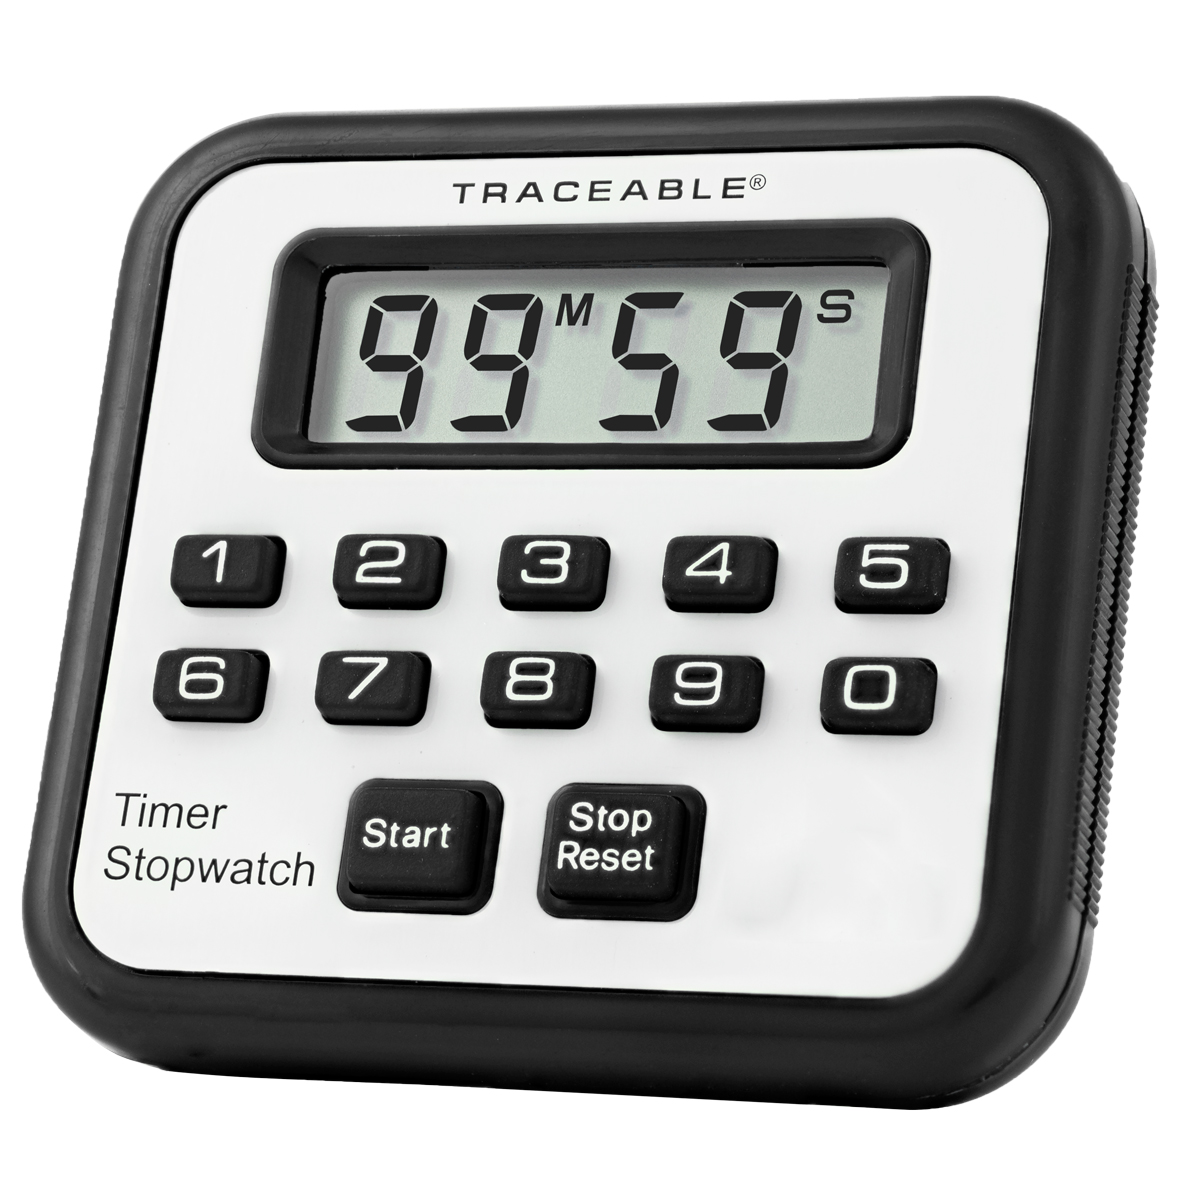 Alarm Timer Alarm Traceable Timer Stopwatch